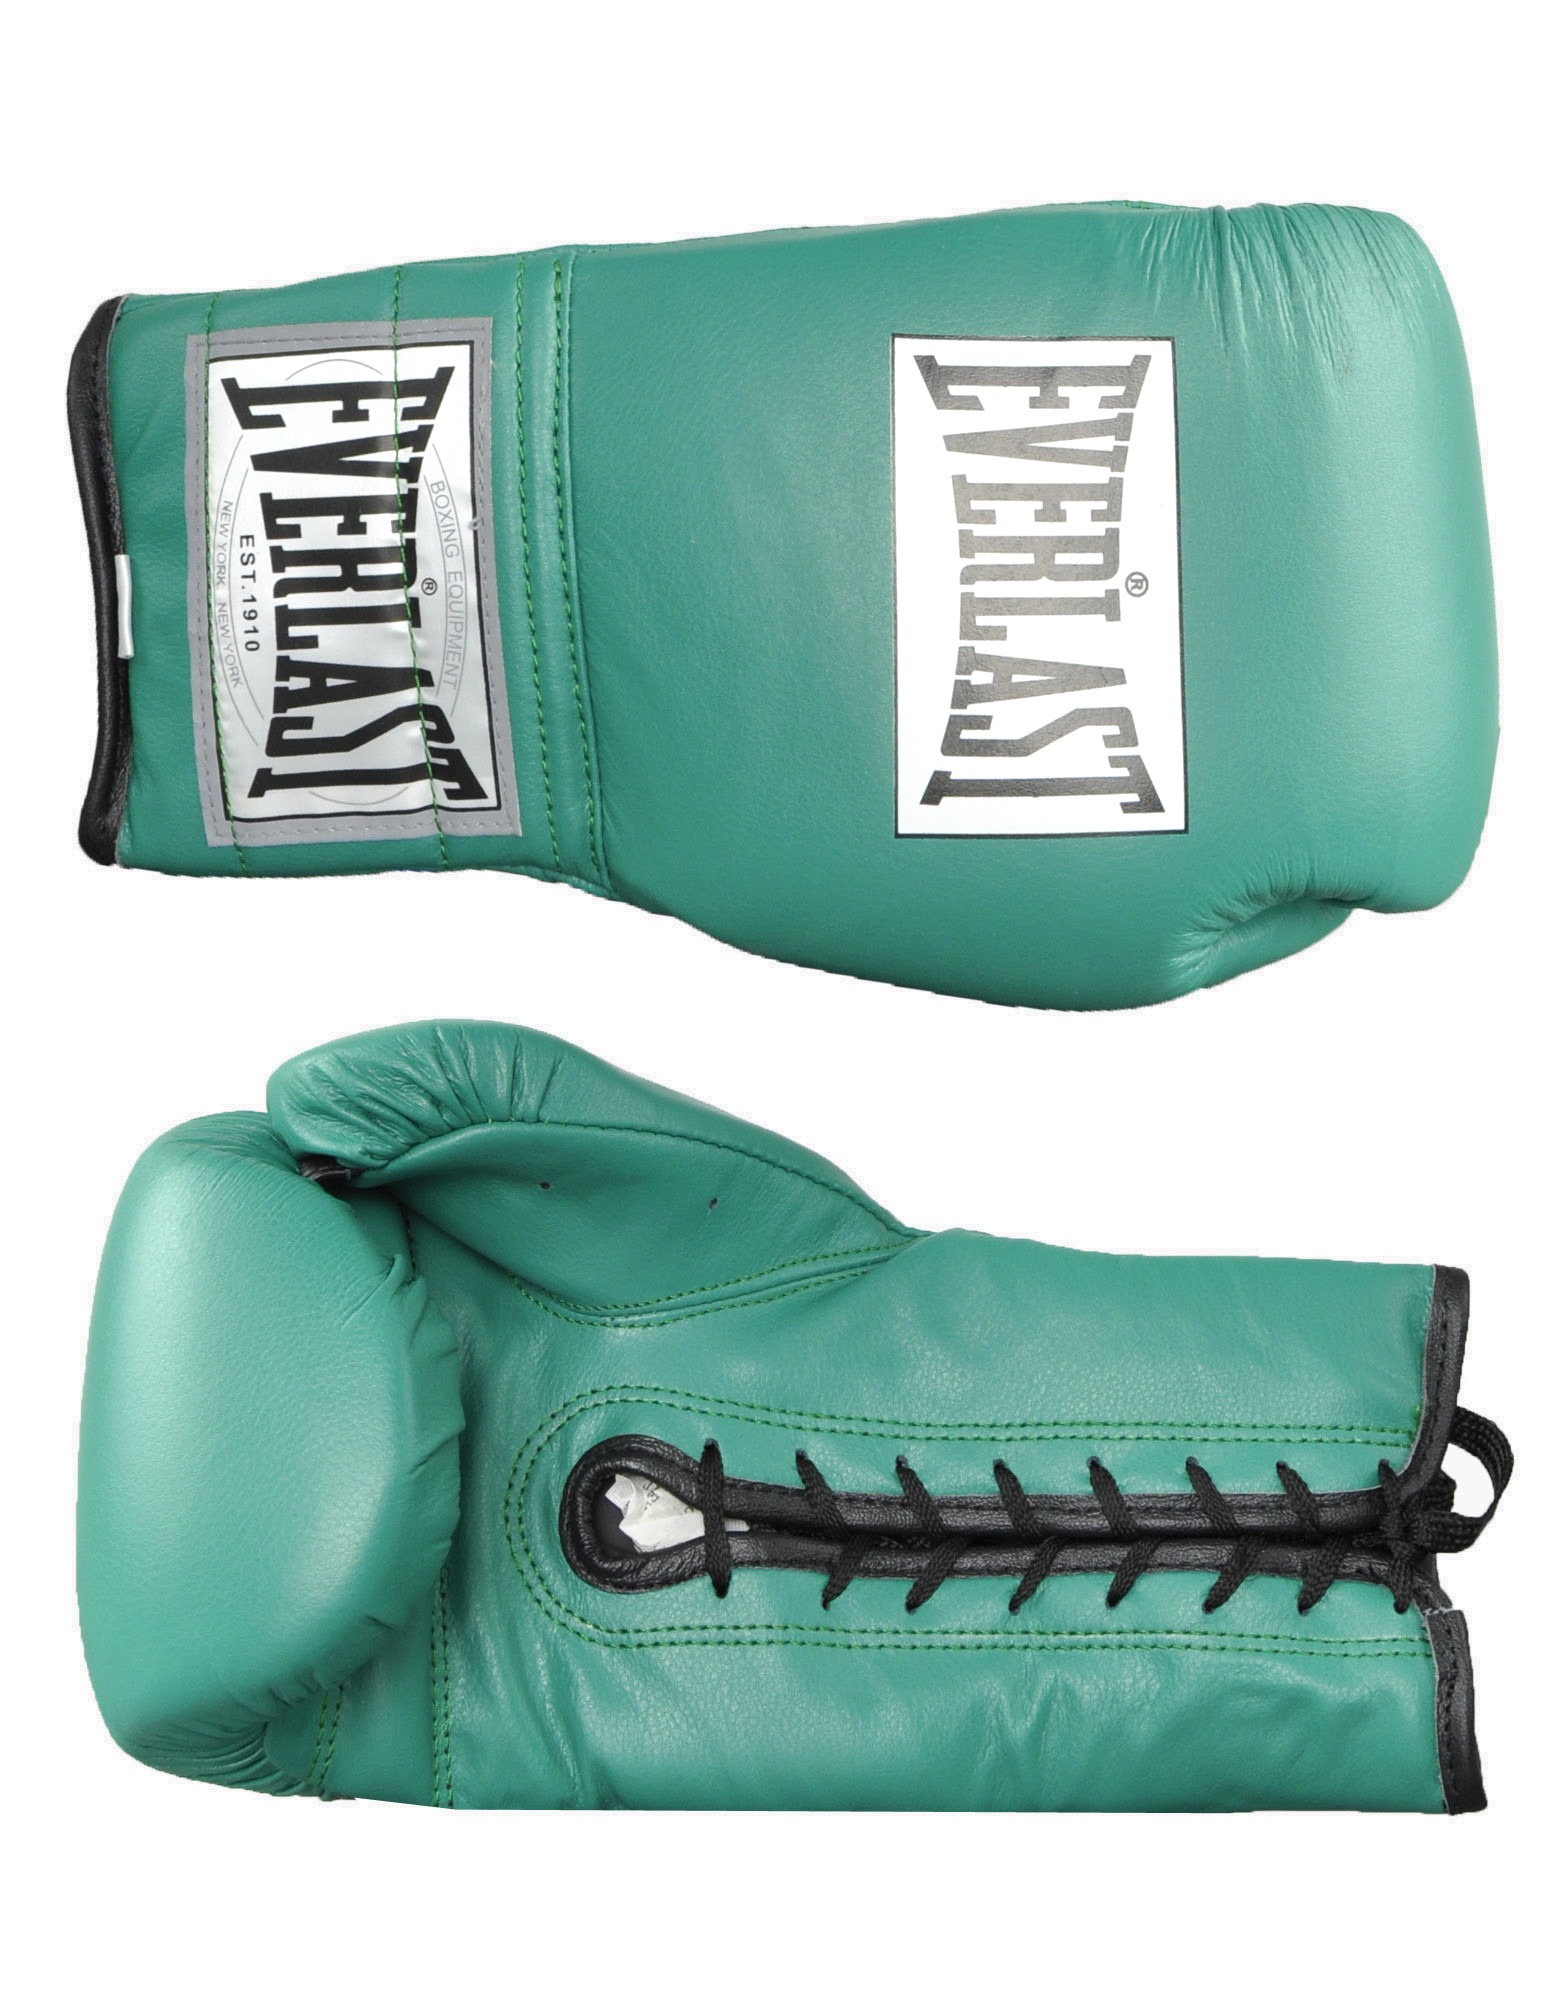 Shiv Naresh Teens Boxing Gloves 12oz: Leather Laced Training Gloves By EVERLAST BOXING (colour